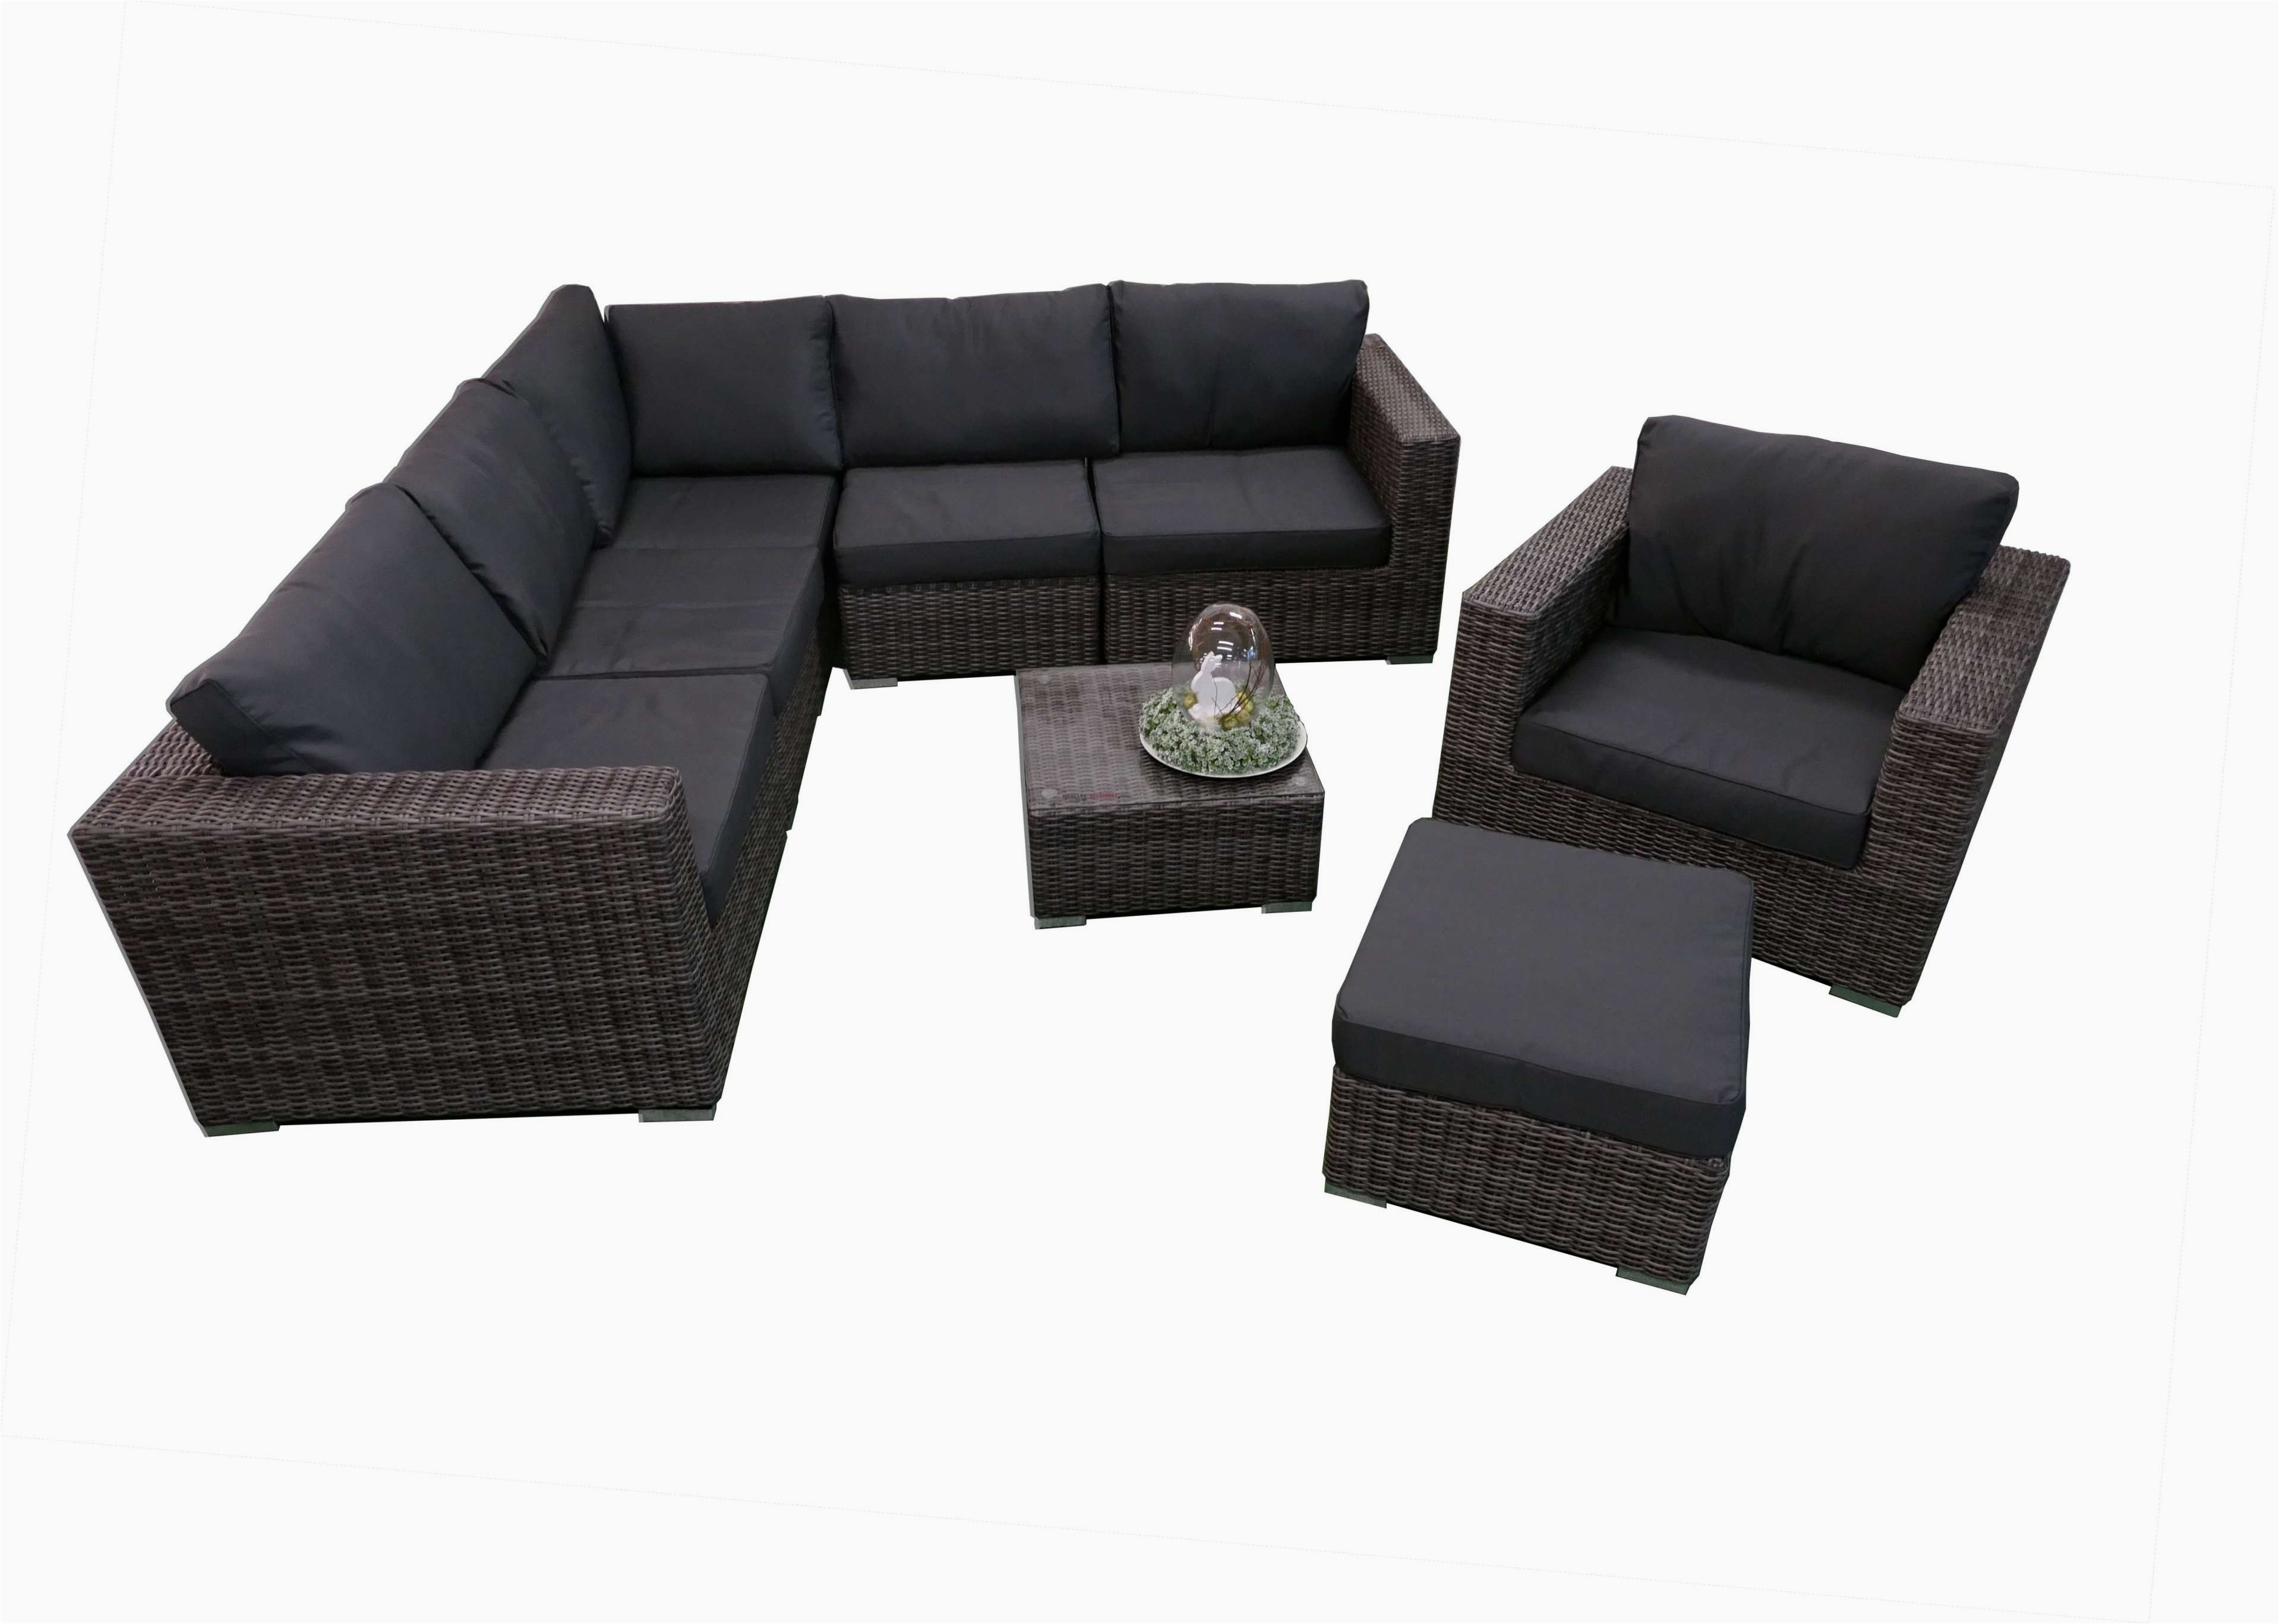 living room furniture sale best of living room table sets new wicker outdoor sofa 0d patio